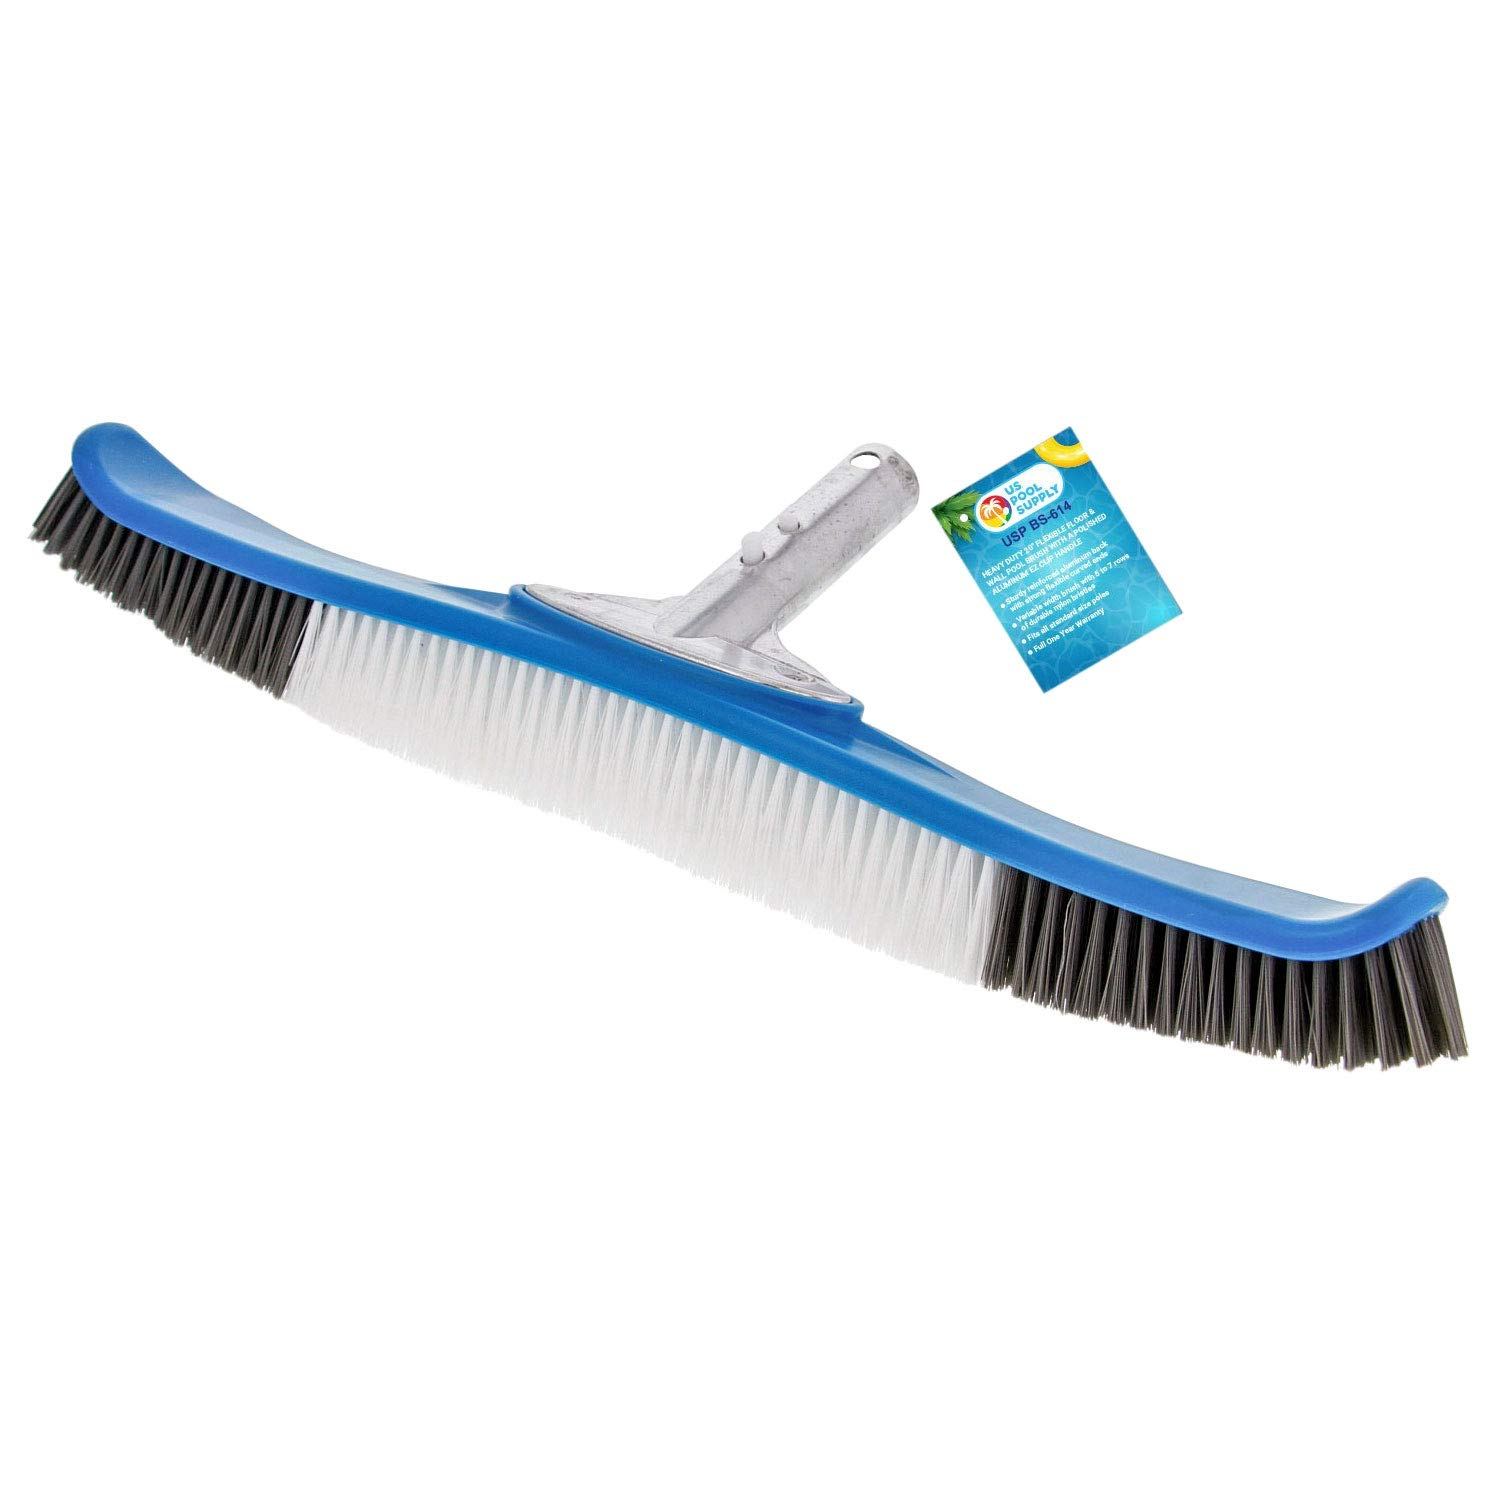 U.S. Pool Supply Professional Heavy Duty 20'' Flexible Floor & Wall Pool Brush with Polished Aluminum EZ Clip Handle - Curved Ends, Durable Nylon Bristles - Easily Sweep Algae from Walls, Floors, Steps by U.S. Pool Supply